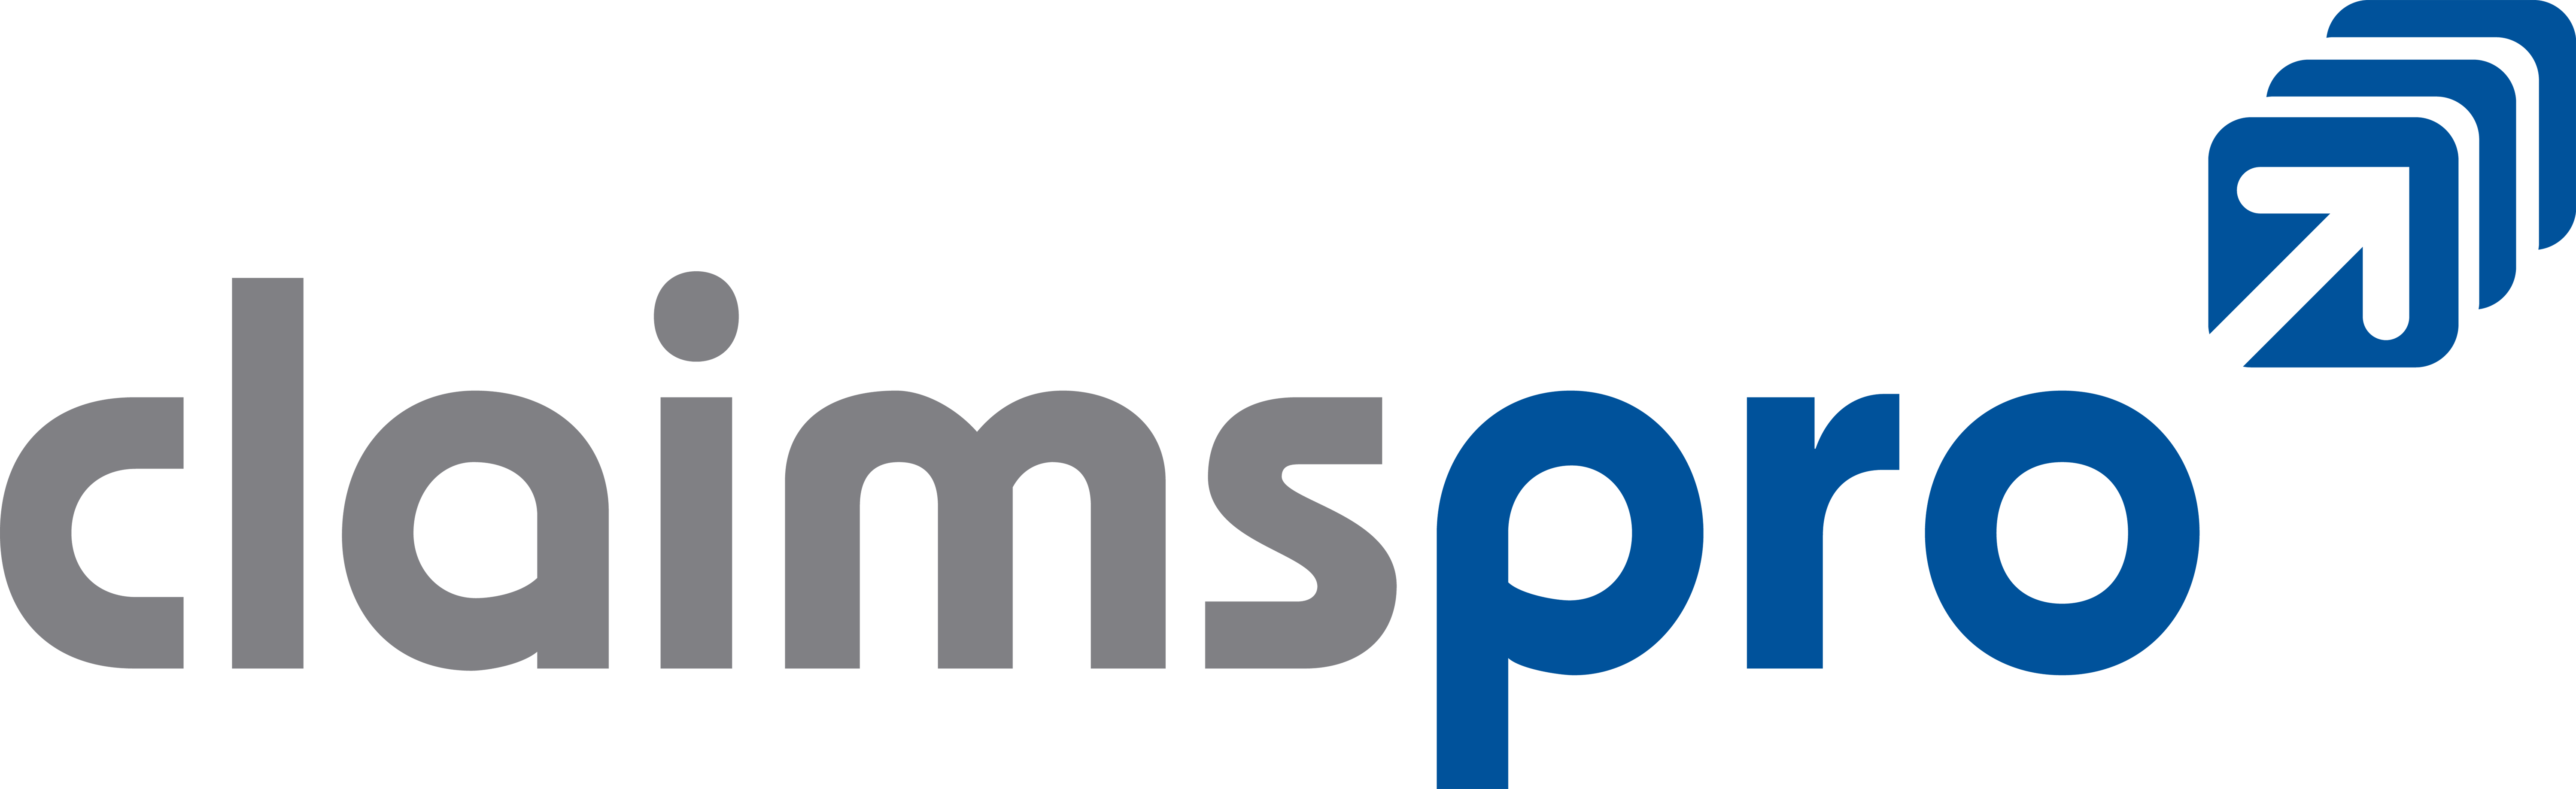 ClaimsPro